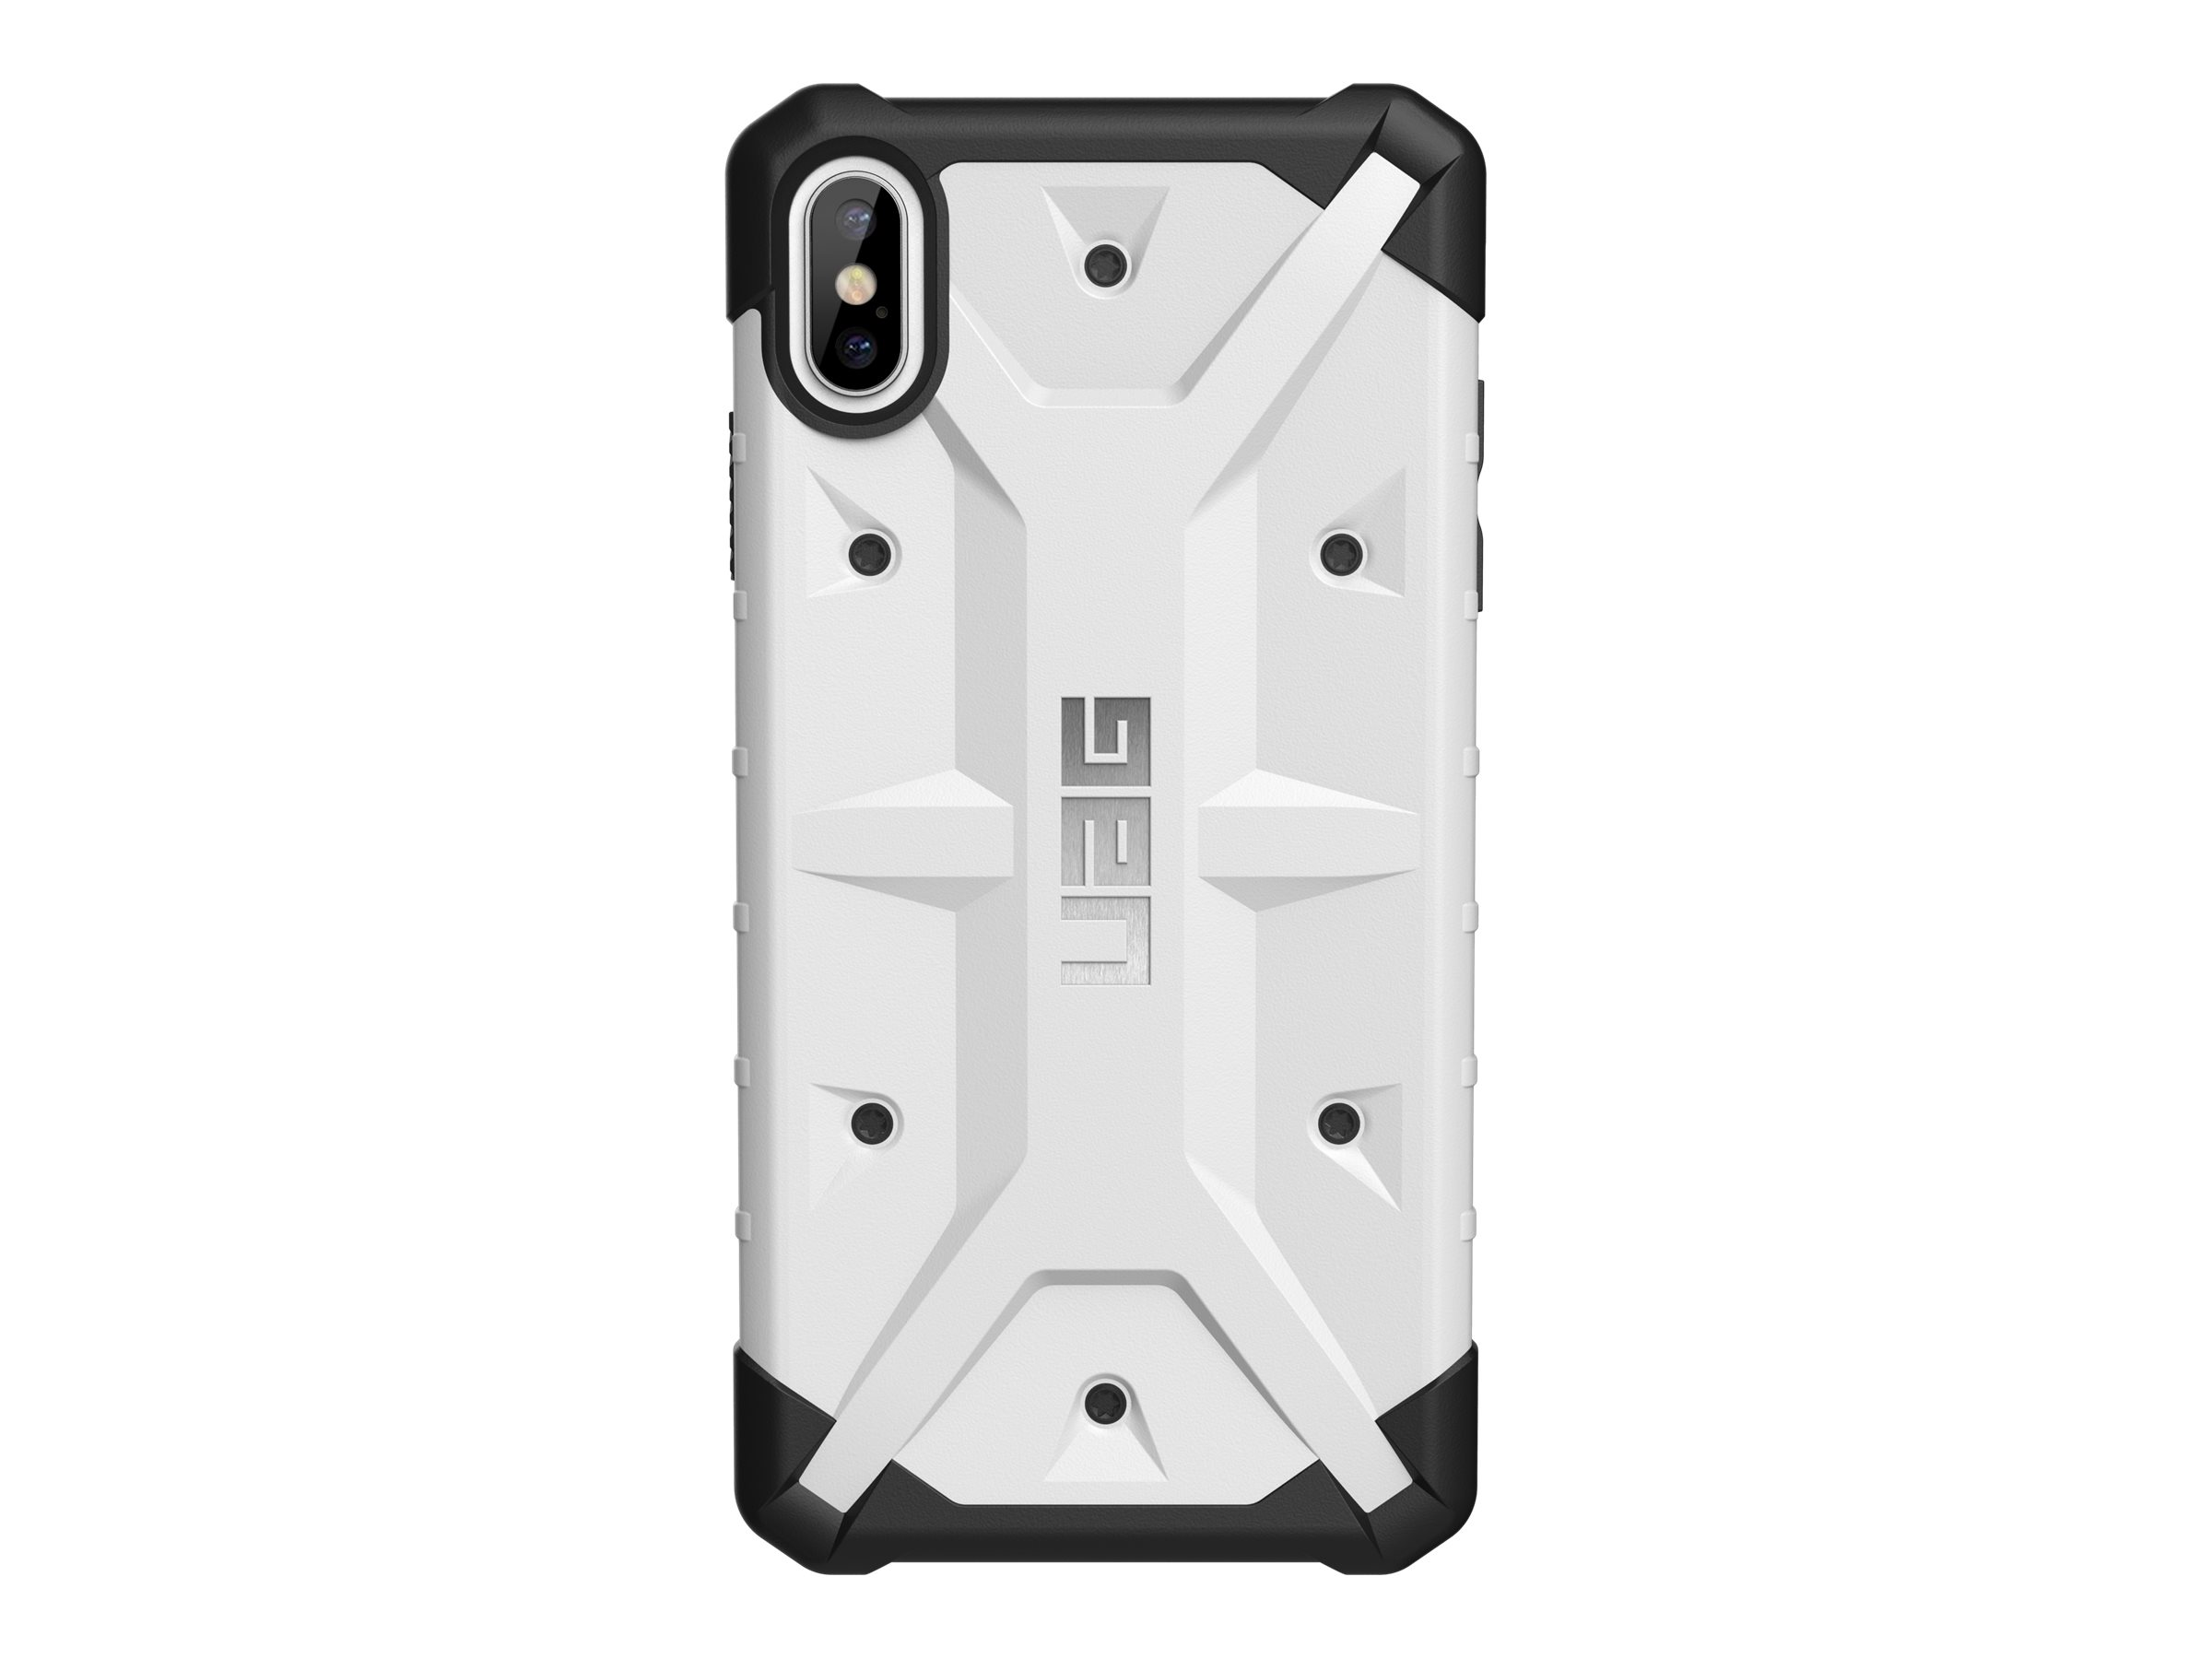 UAG Rugged Case for iPhone Xs Max [6.5-inch screen] - Pathfinder White - back cover for cell phone